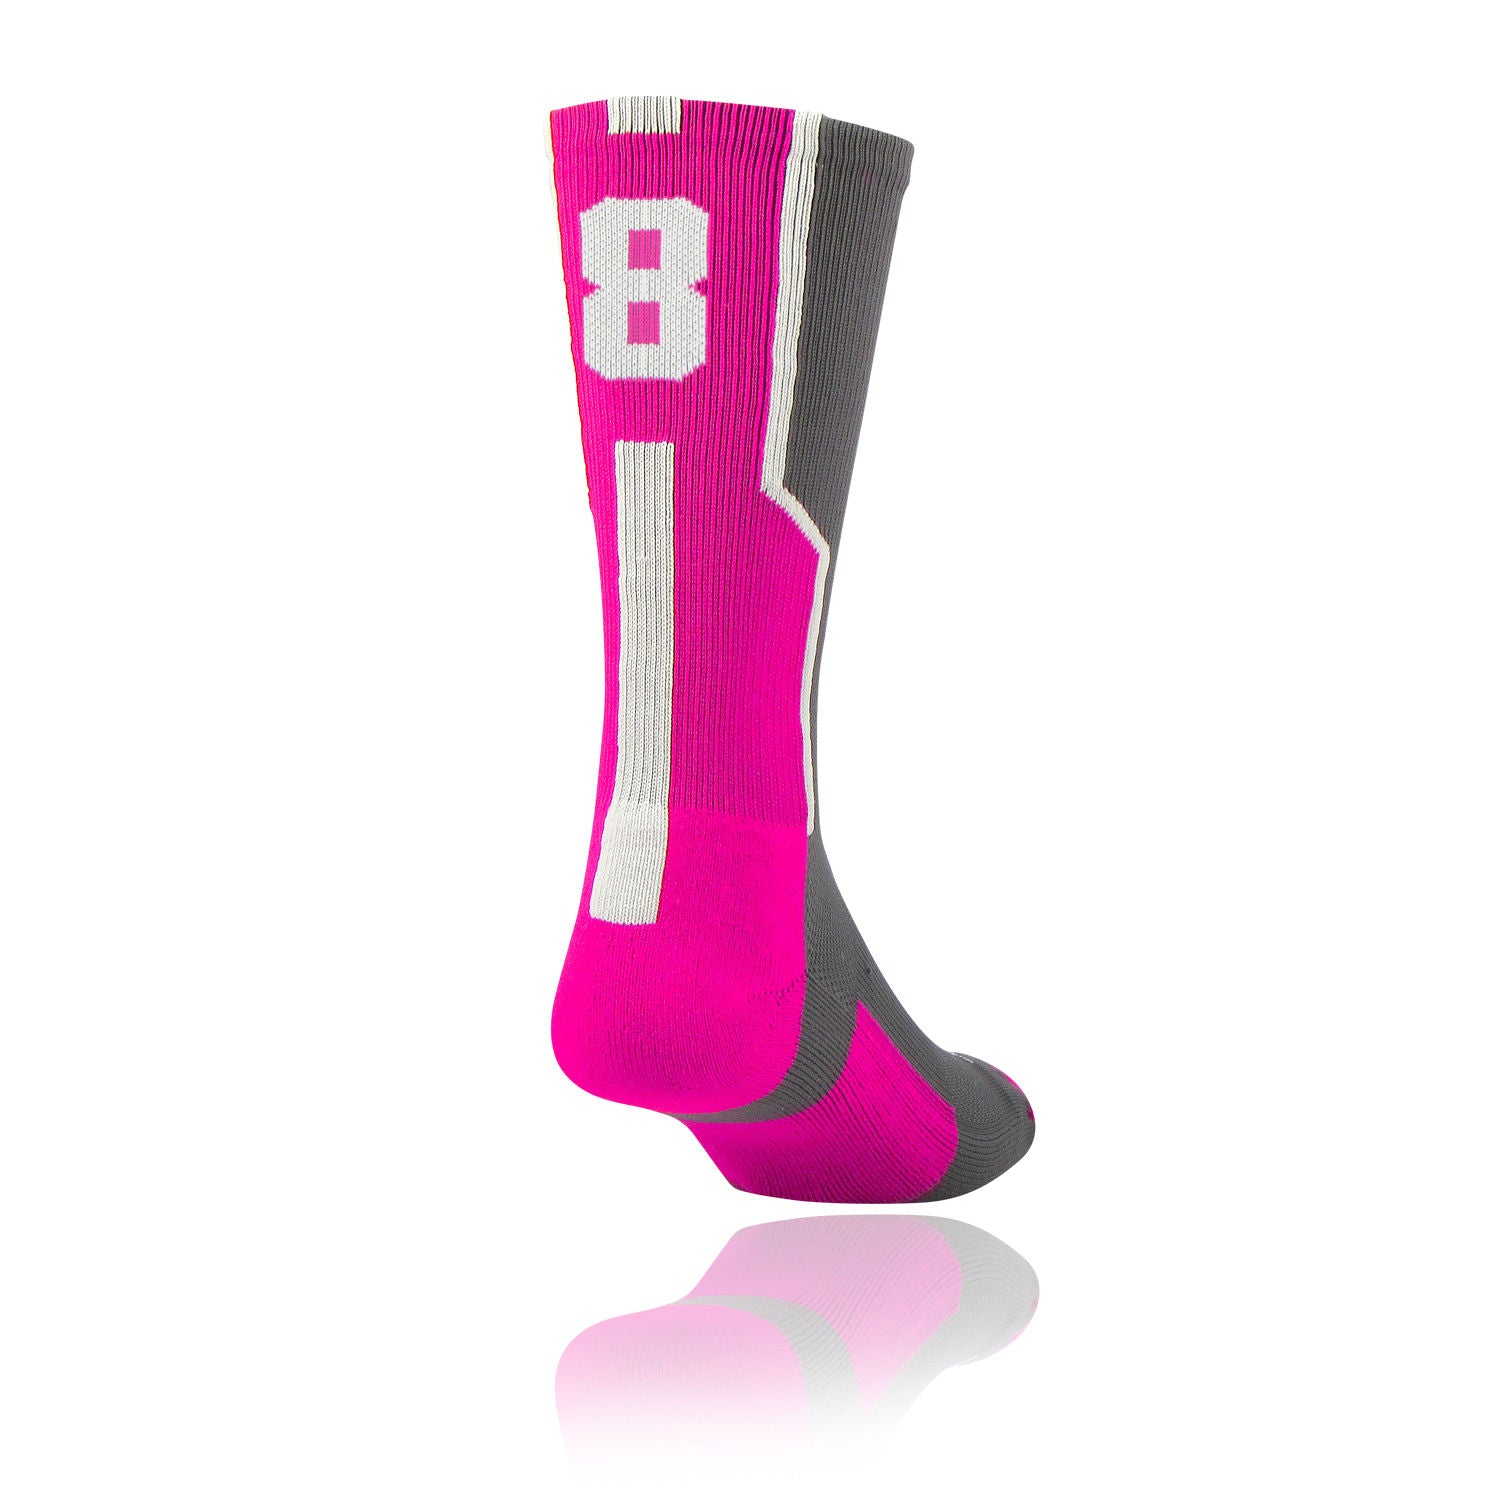 TCK Player ID Jersey Number Crew Socks Hot Pink, Graphite, White Singles